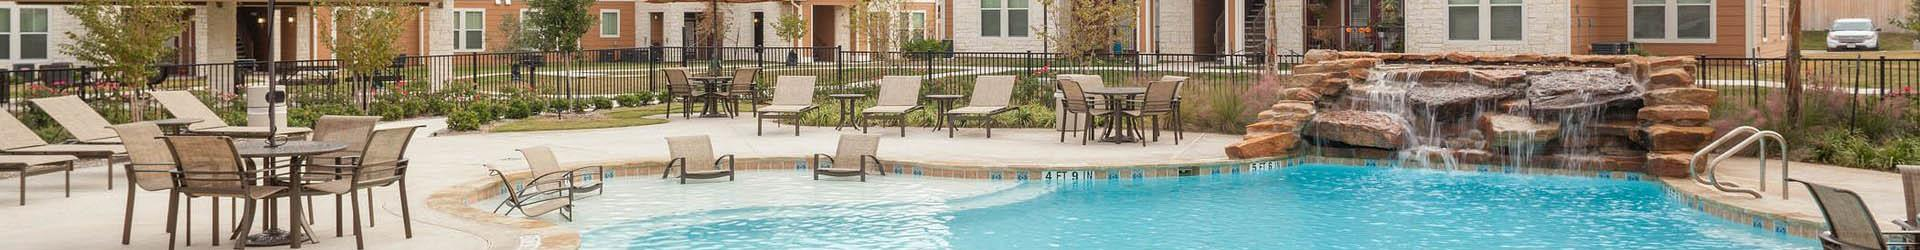 Apartments Off Wonderworld San Marcos Tx Apartments for Rent in